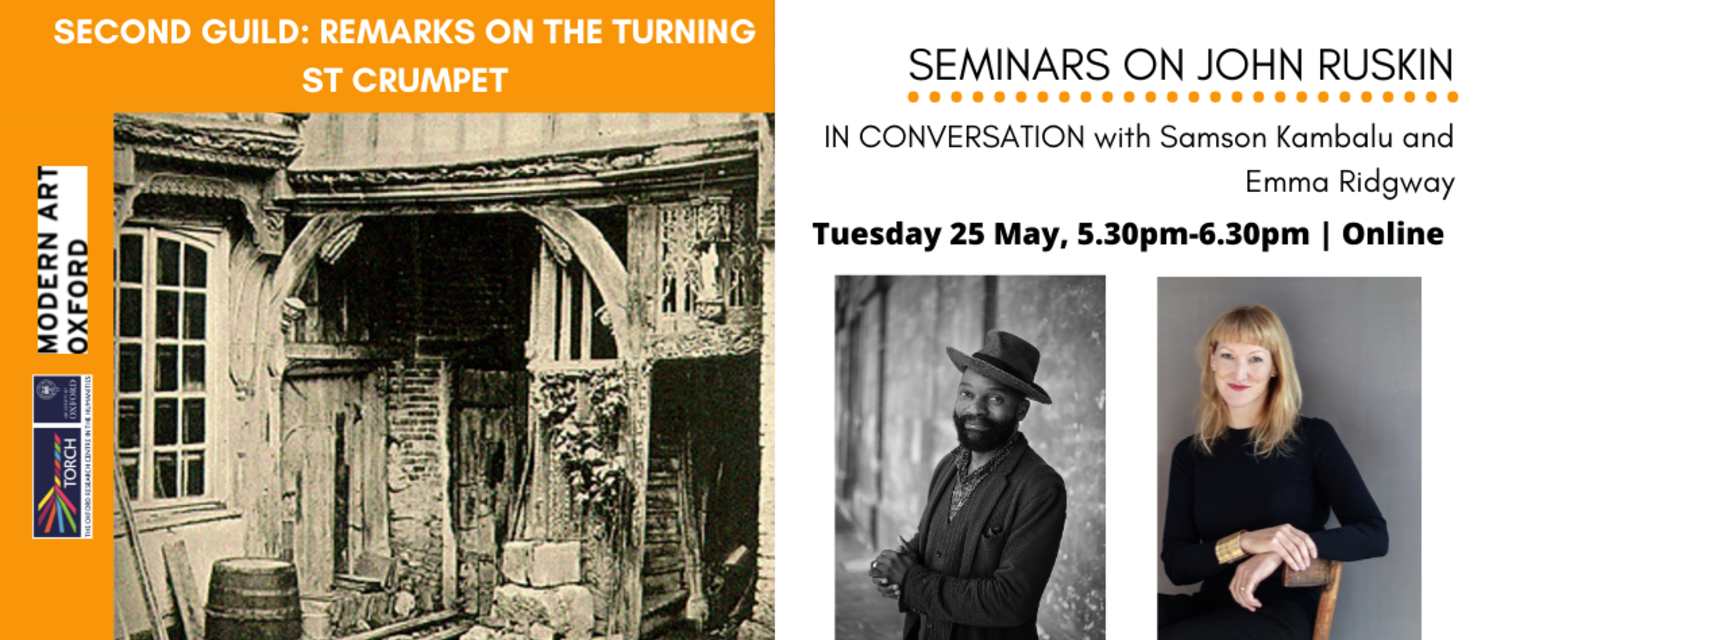 Photos of Samson Kambalu and Emma Ridgeway, and a photo of a run down bard. Text reads 'Second Guild: Remarks on the Turning St Crumpet. Seminars on John Ruskin. Tuesday 25may 5.30pm-6.30pm.'